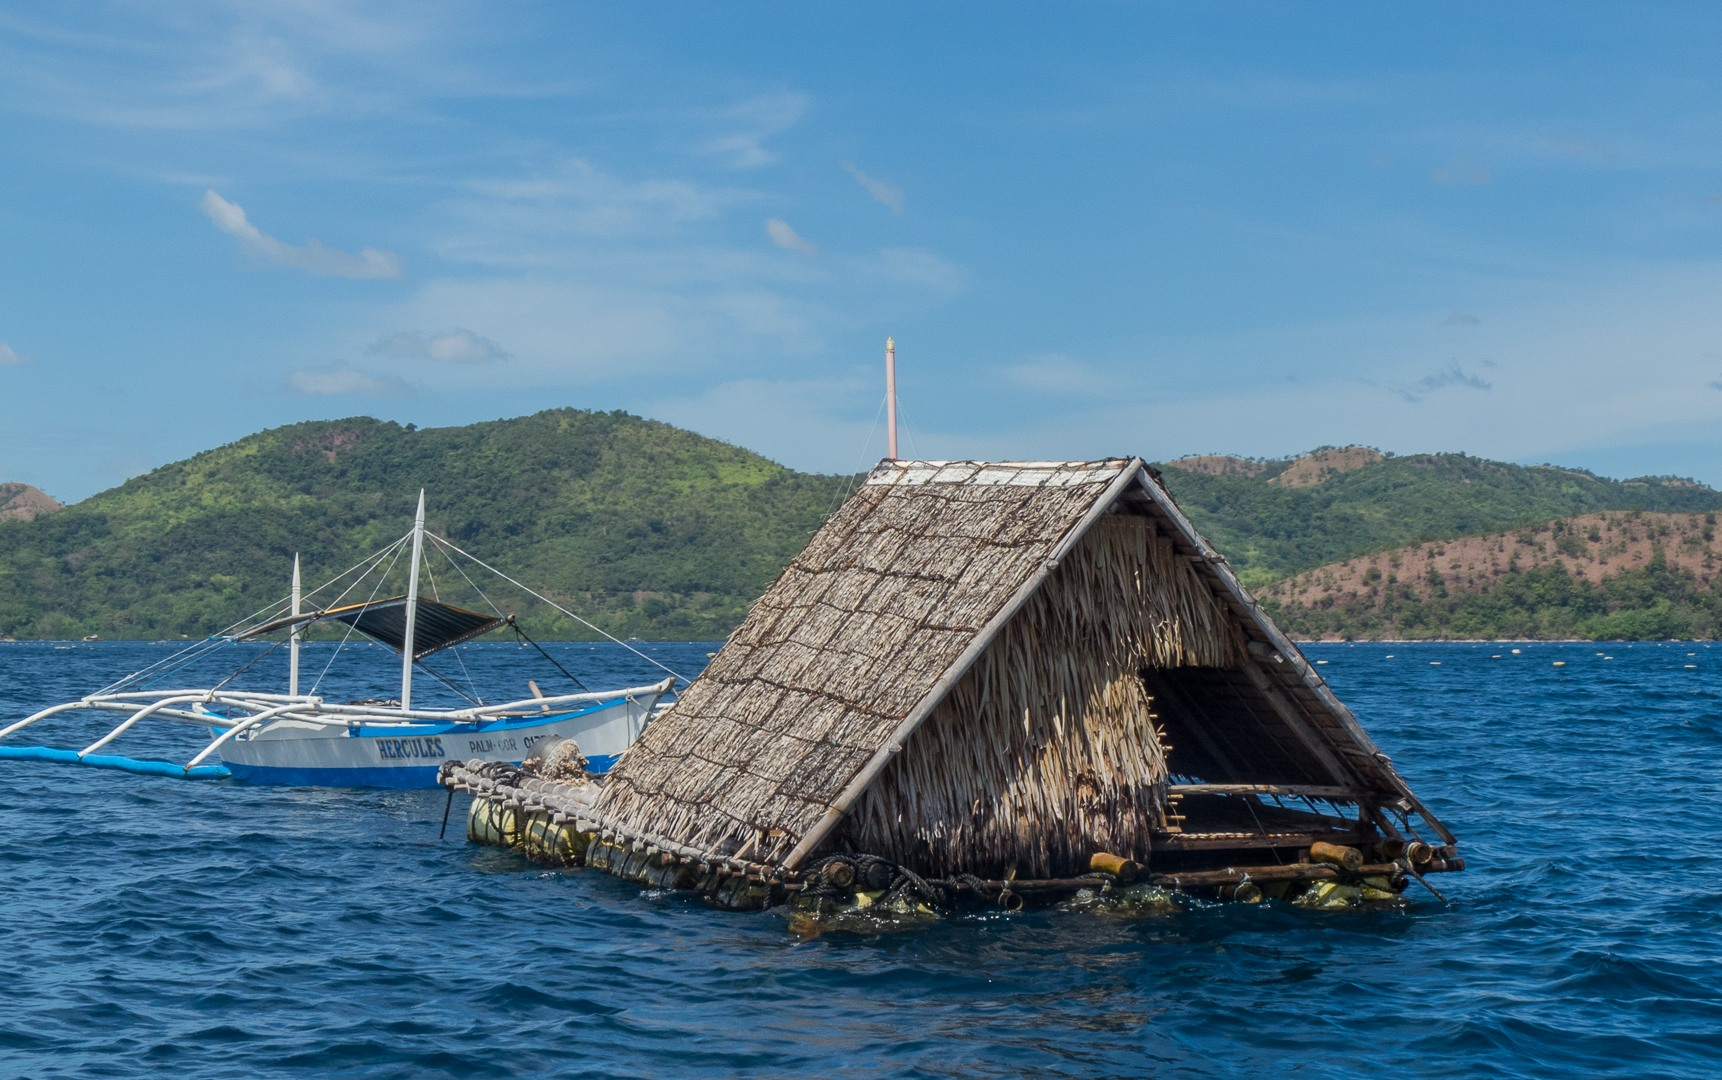 The hut watchmen of pearl farms. Learning diver, Philippines